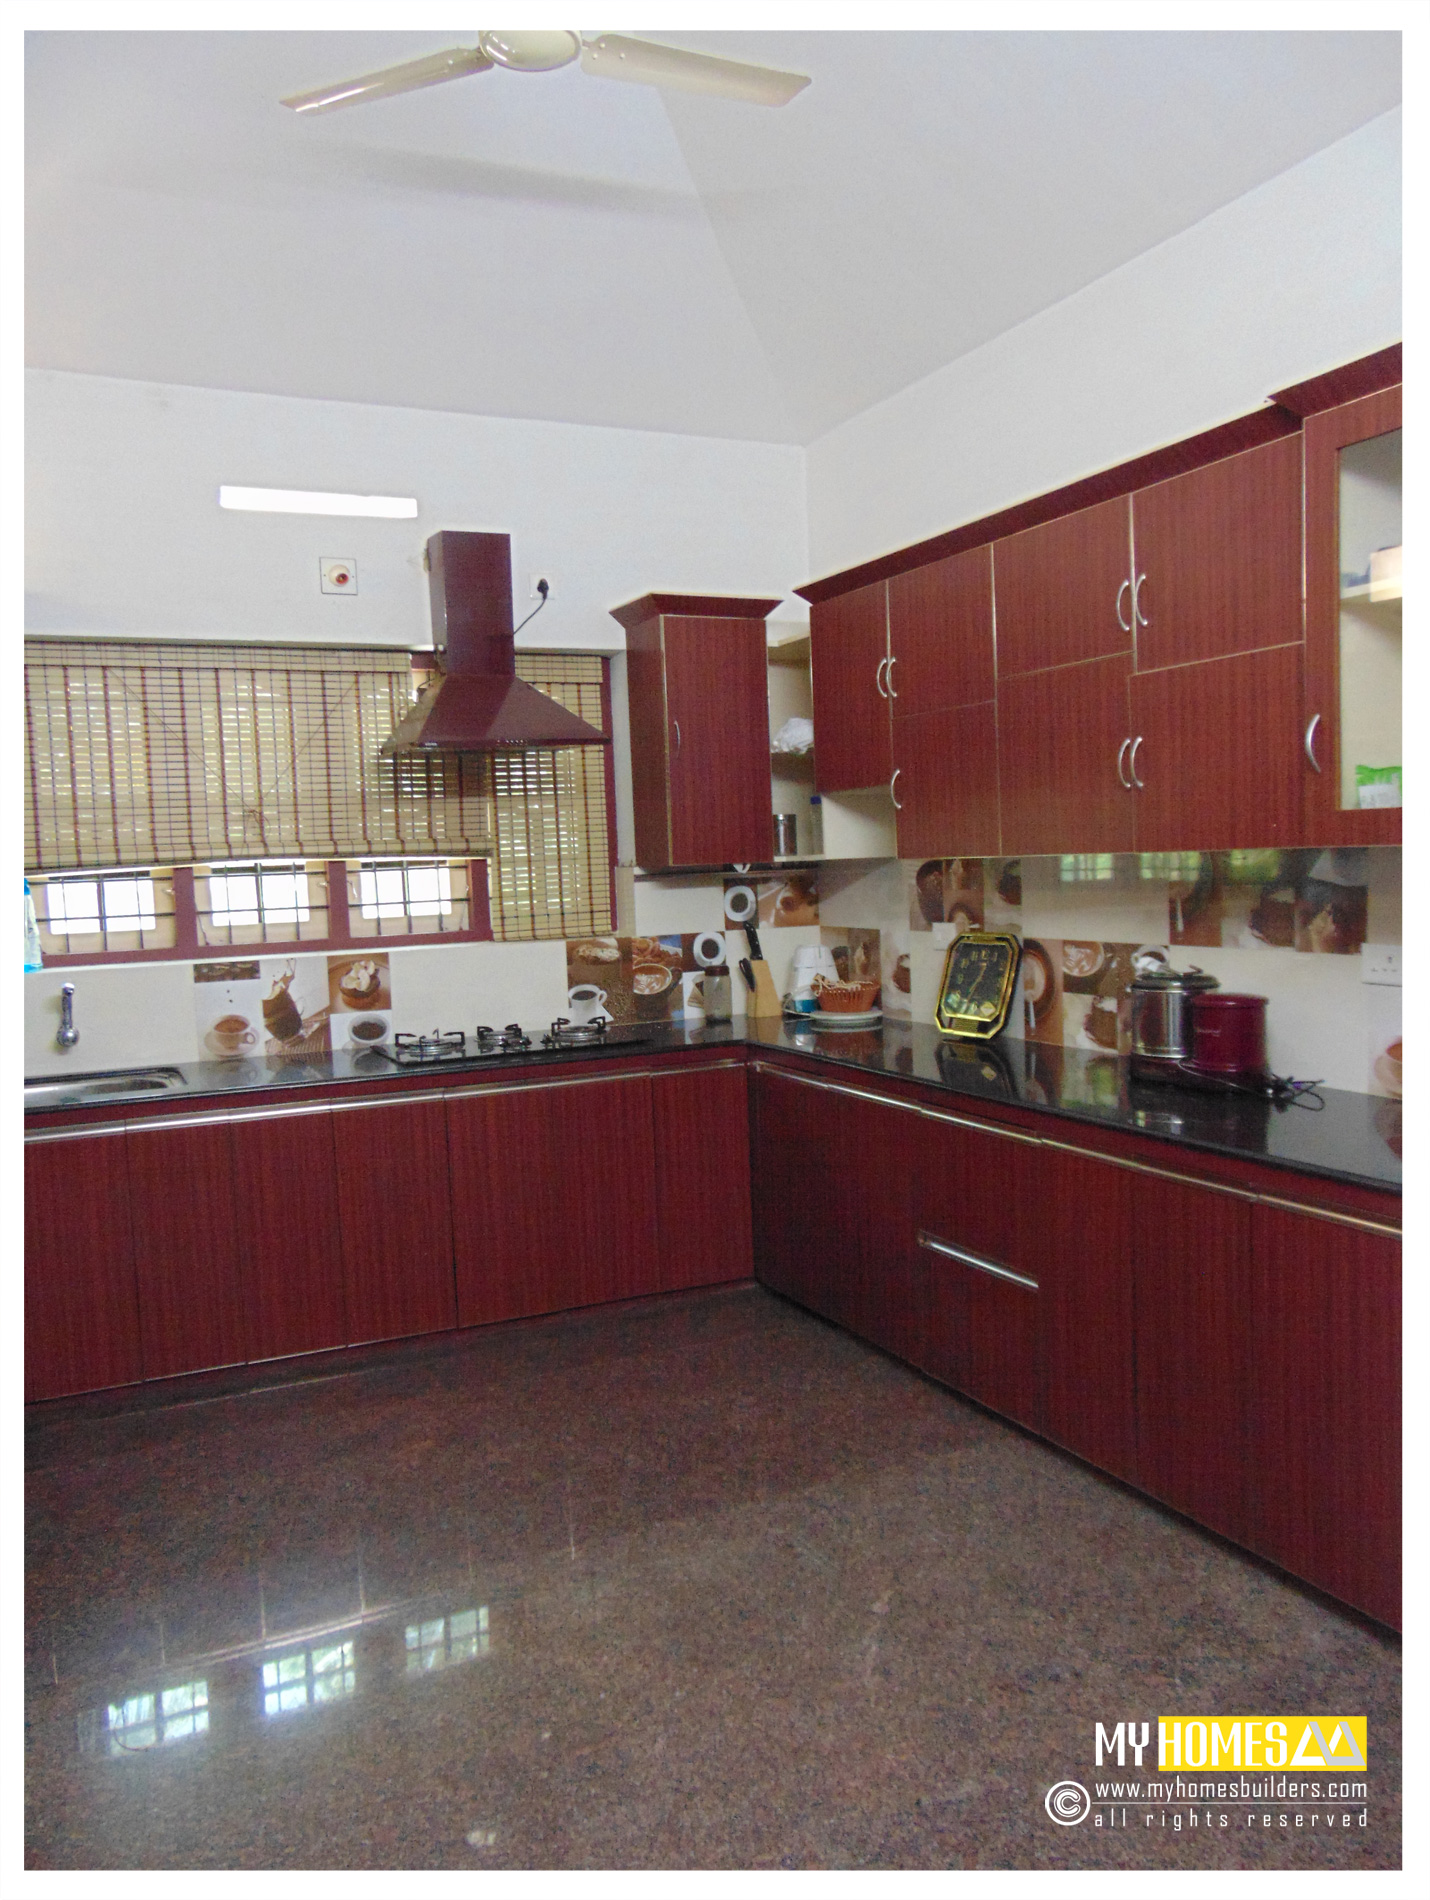 Latest kitchen design kerala in modular inteior designing for Latest interior designs for home